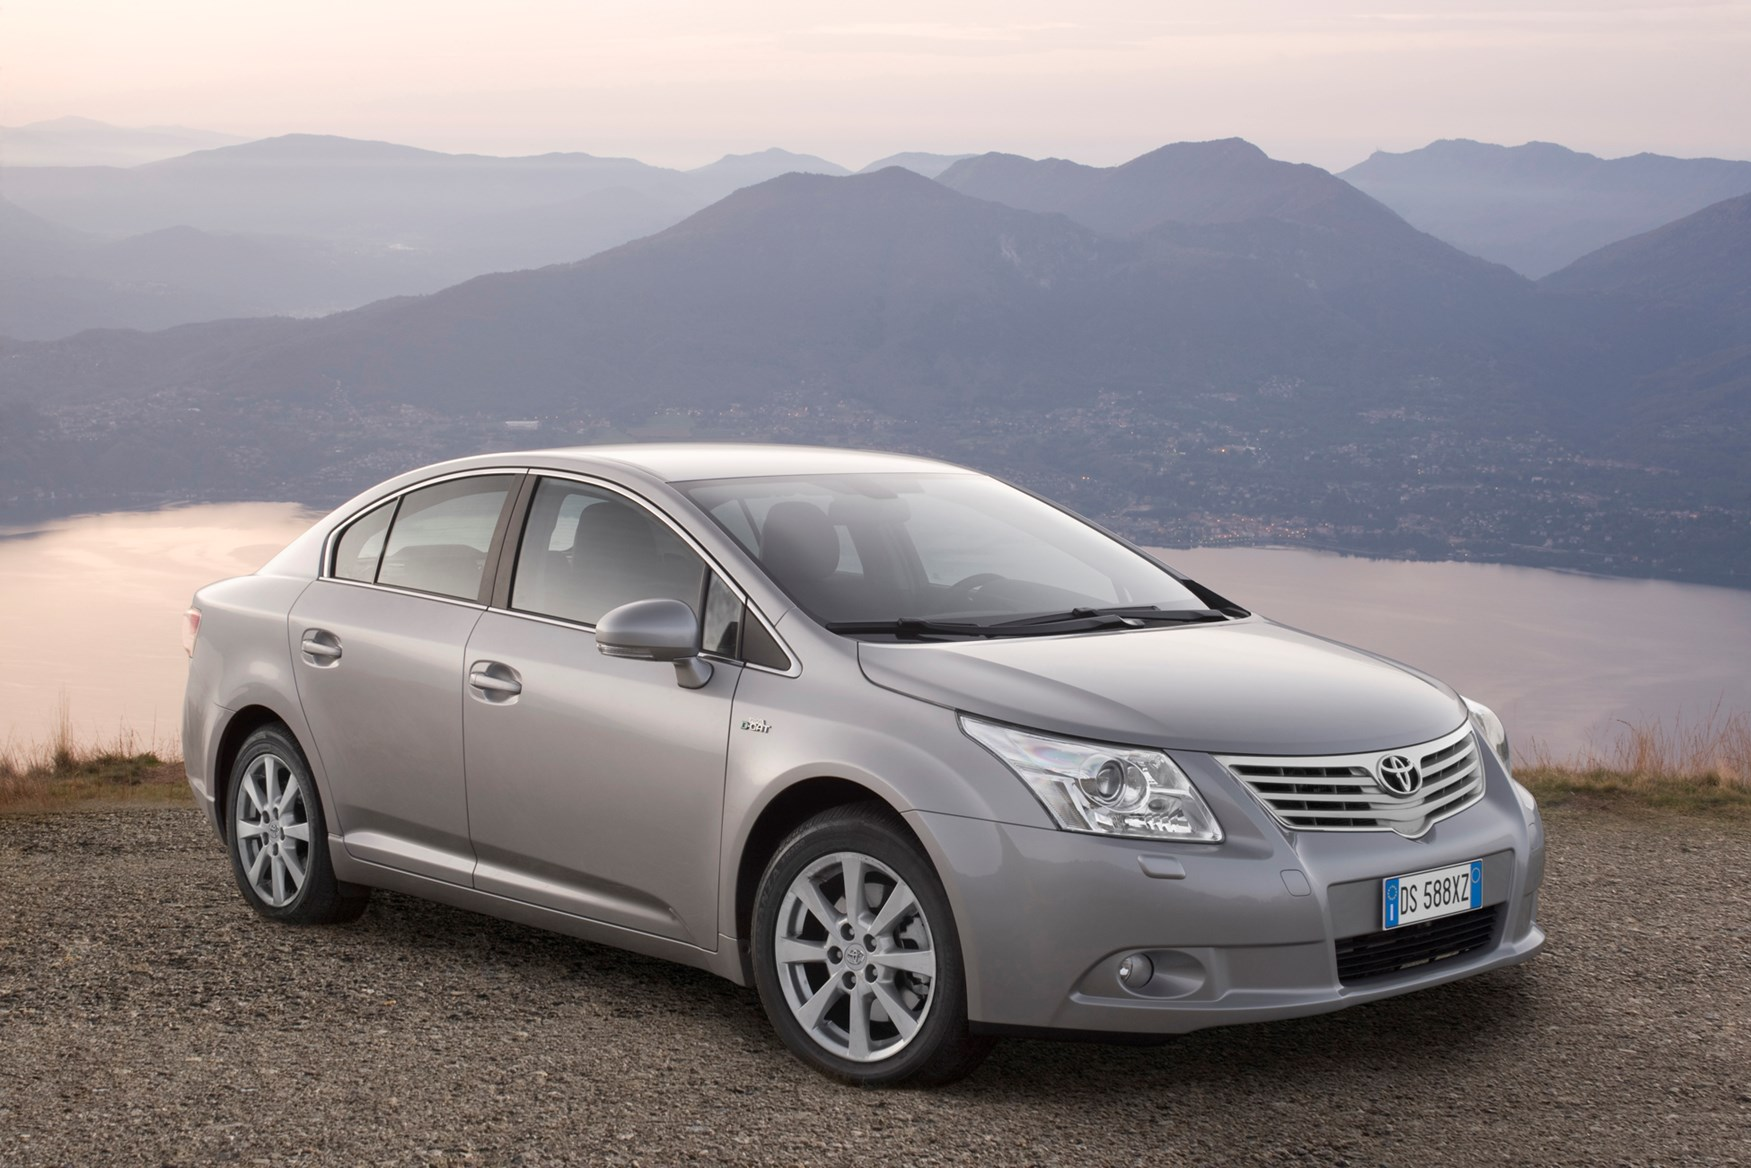 toyota avensis saloon review 2009 parkers. Black Bedroom Furniture Sets. Home Design Ideas